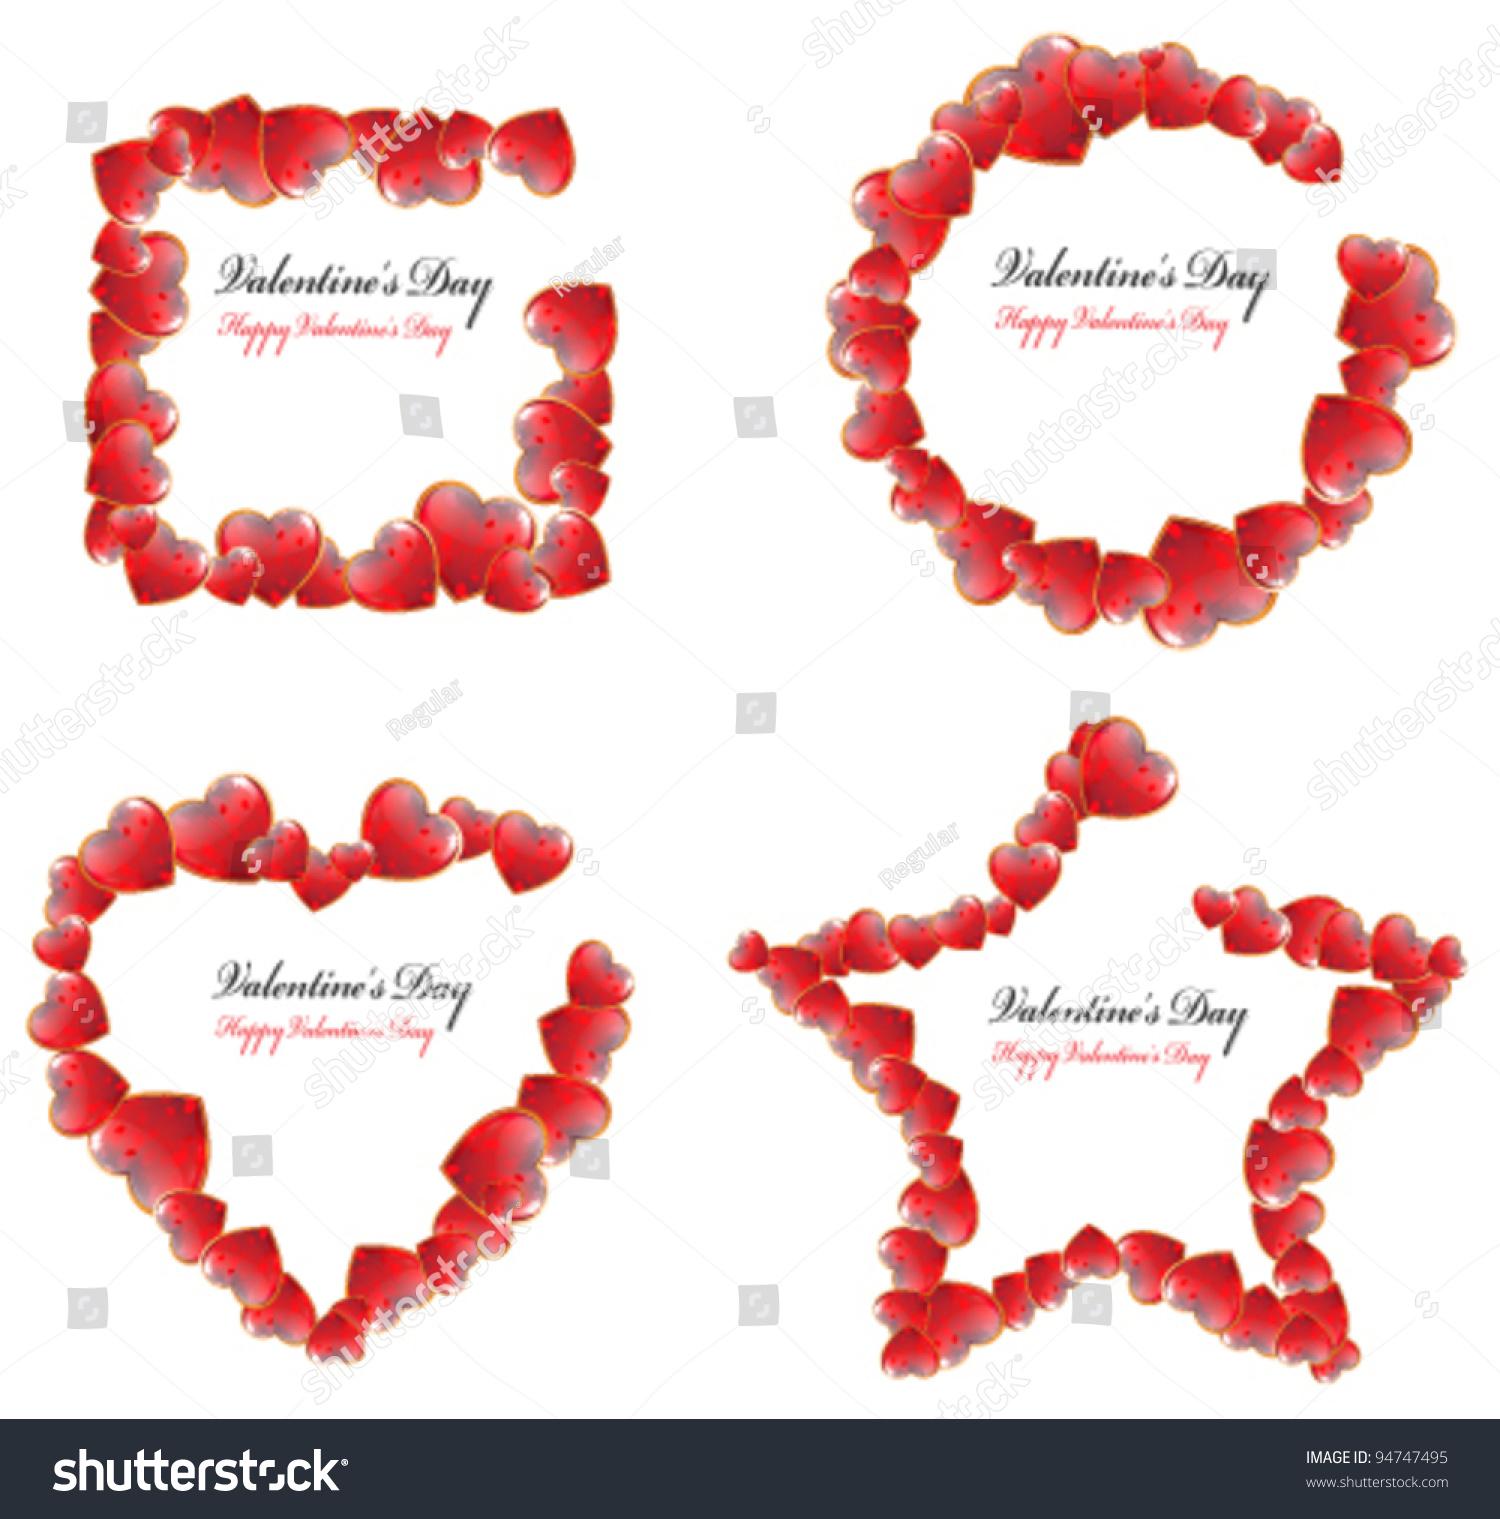 set of valentines day frames in the shape of a square circle heart and